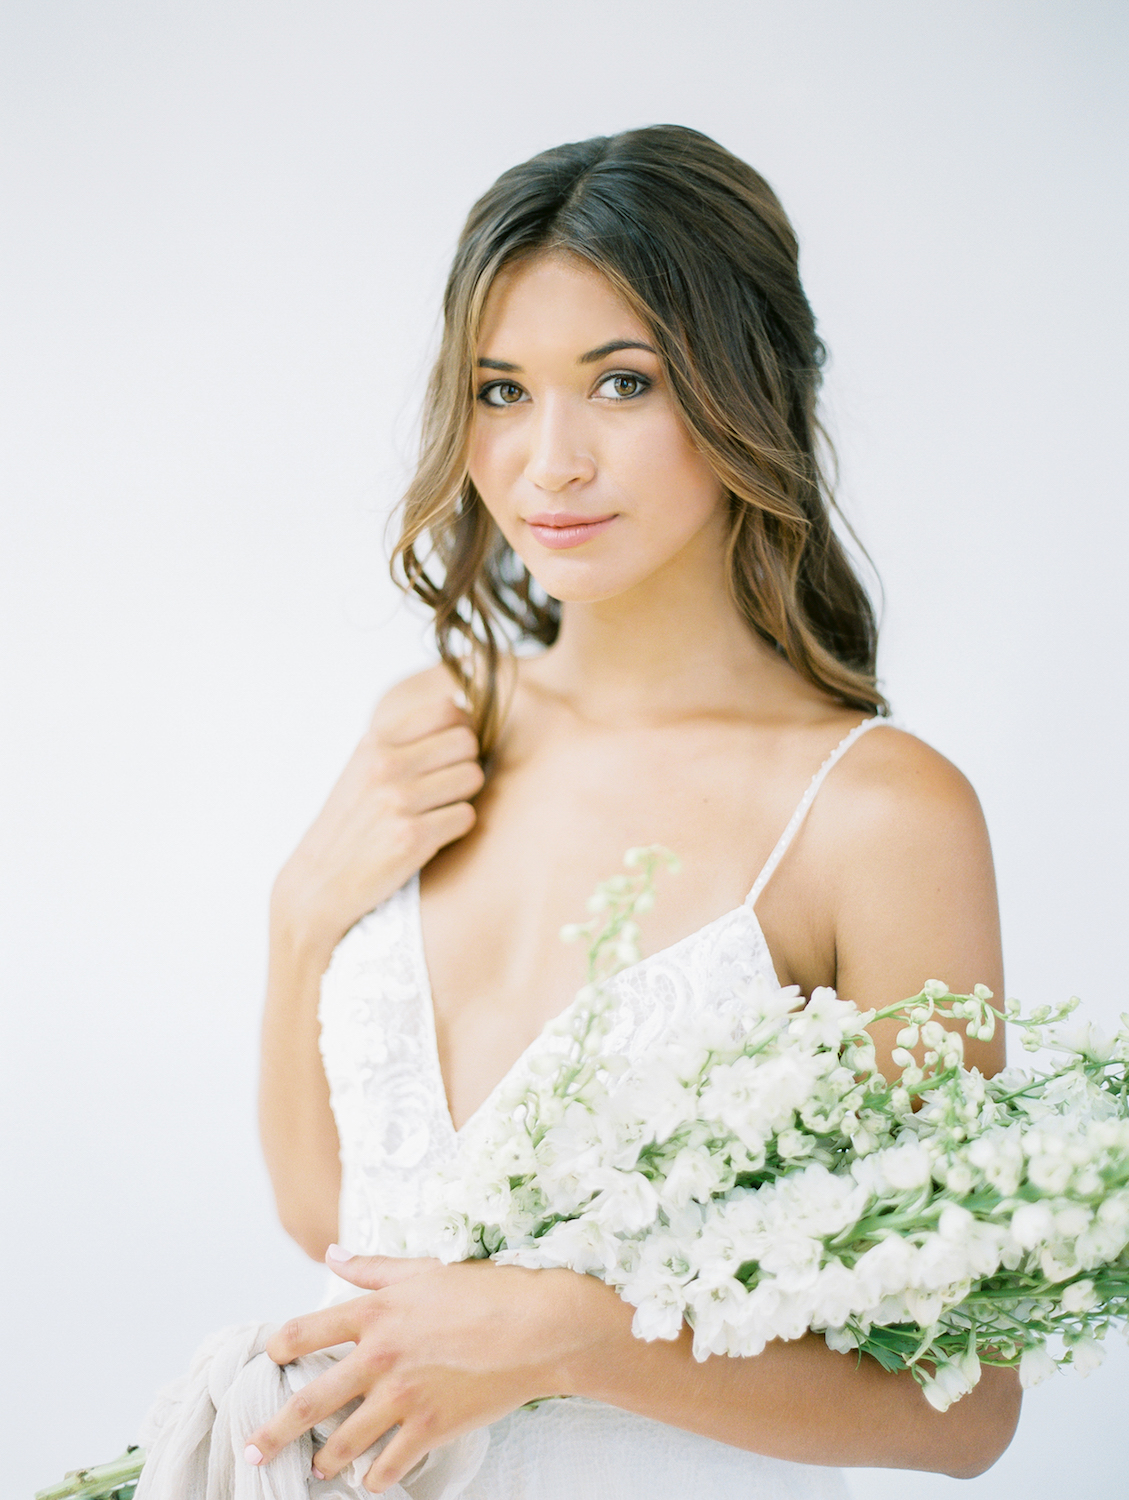 Natural bridal makeup and long hair | Studio 710 | Compass Floral | Wedding Florist in San Diego and Southern California | Dear Lovers Photography